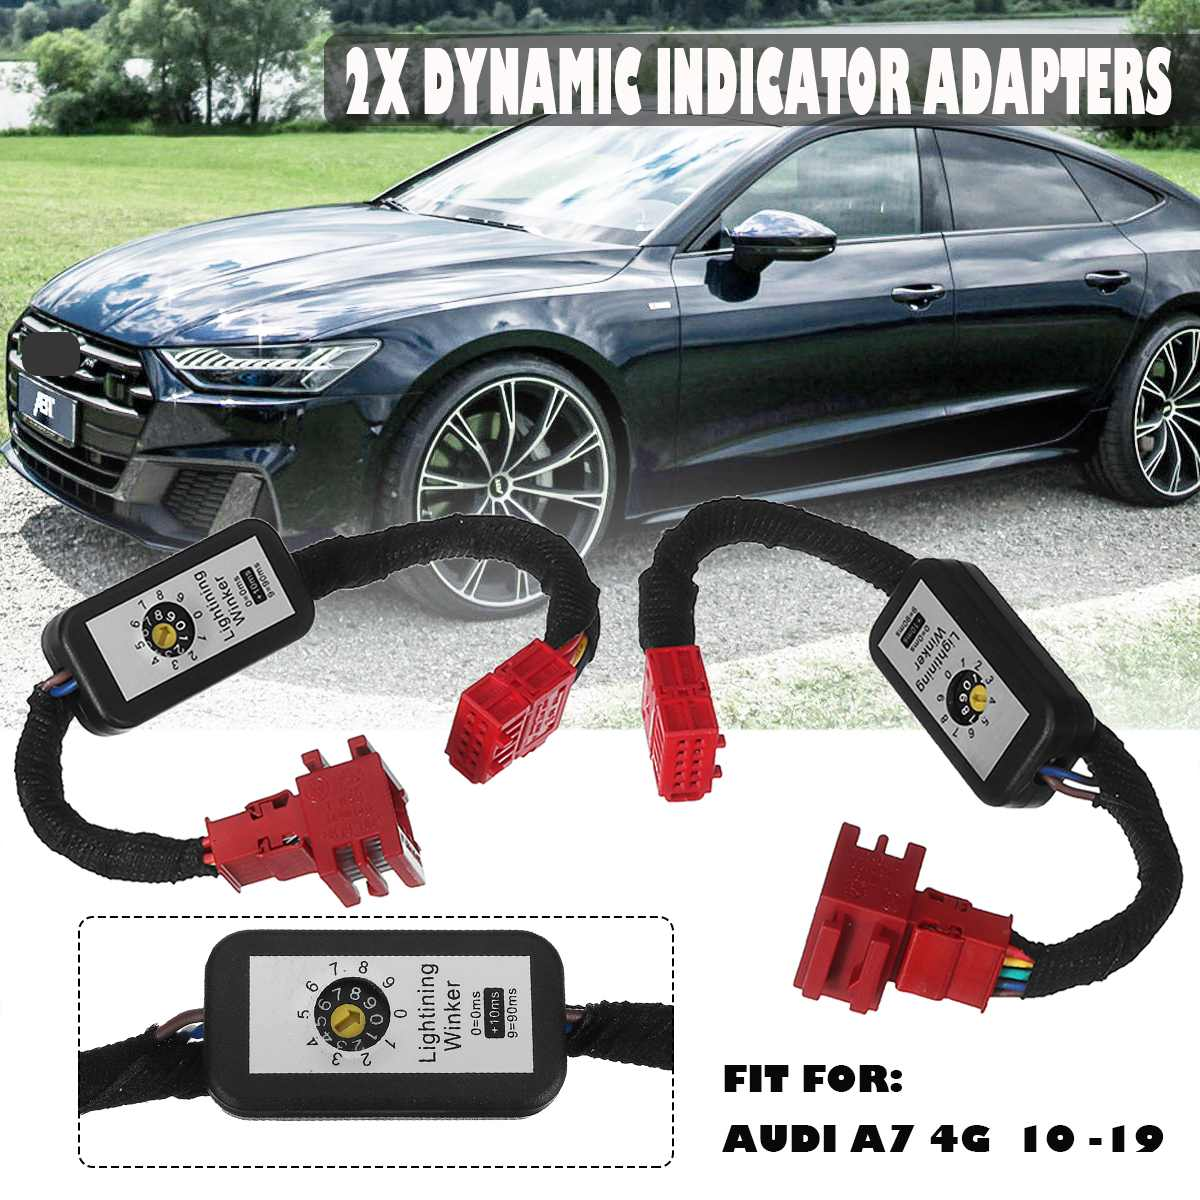 2pcs Dynamic LED Indicator Flasher Adapters Rear Lights LED Taillight Add-on Module Cable Wire Harness for Audi A7 4G 2010 -2019 image